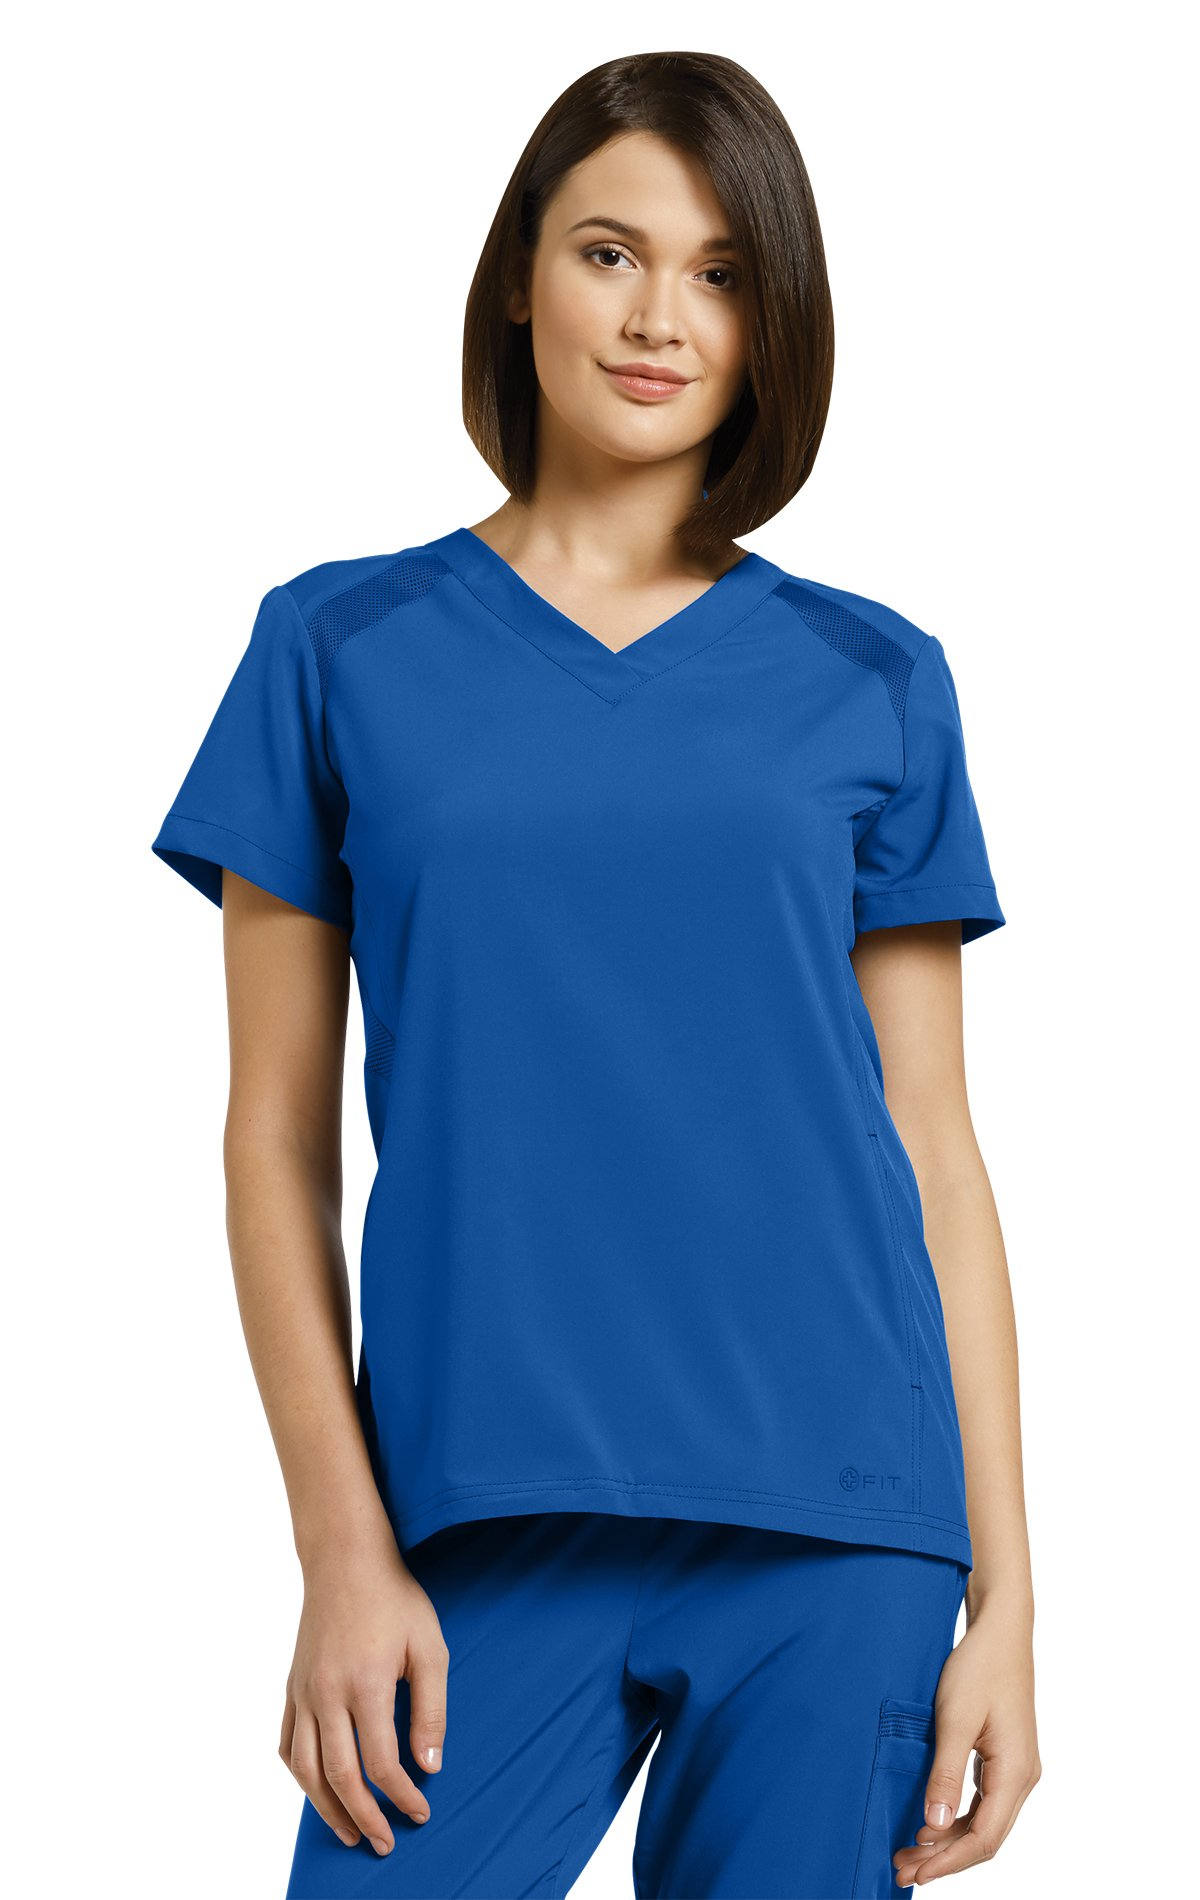 Oasis Fit By White Cross Women's V-Neck Solid Scrub Top Medium Royal